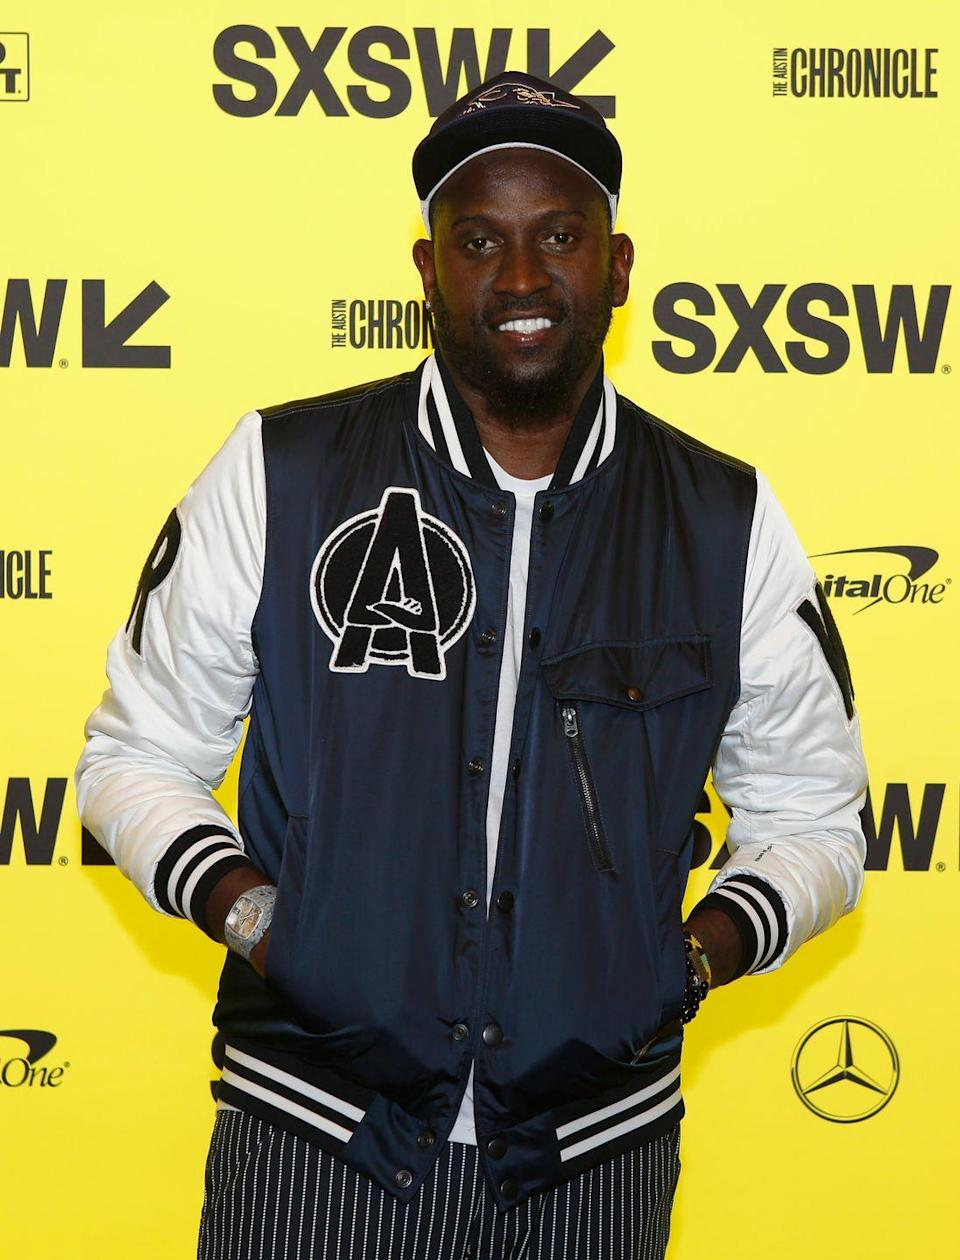 """<p>Glover followed show creator David Simon to New Orleans to work on<em> Treme</em>, had a role in <em>12 Years a Slave,</em> and starred as Leon in <em>The Deuce</em>. </p><p>Unfortunately, The dark elements of <em>The Wire</em> bled into Glover's real life: His younger brother was shot and killed in 2007, his teenage son was shot five times in a harrowing 2011 incident, and Glover himself was <a href=""""https://www.washingtonpost.com/local/crime/wire-actor-anwan-glover-stabbed-at-a-dc-nightclub/2014/08/03/81bfafe4-1b29-11e4-ab7b-696c295ddfd1_story.html"""" rel=""""nofollow noopener"""" target=""""_blank"""" data-ylk=""""slk:stabbed"""" class=""""link rapid-noclick-resp"""">stabbed</a> in 2014.</p>"""